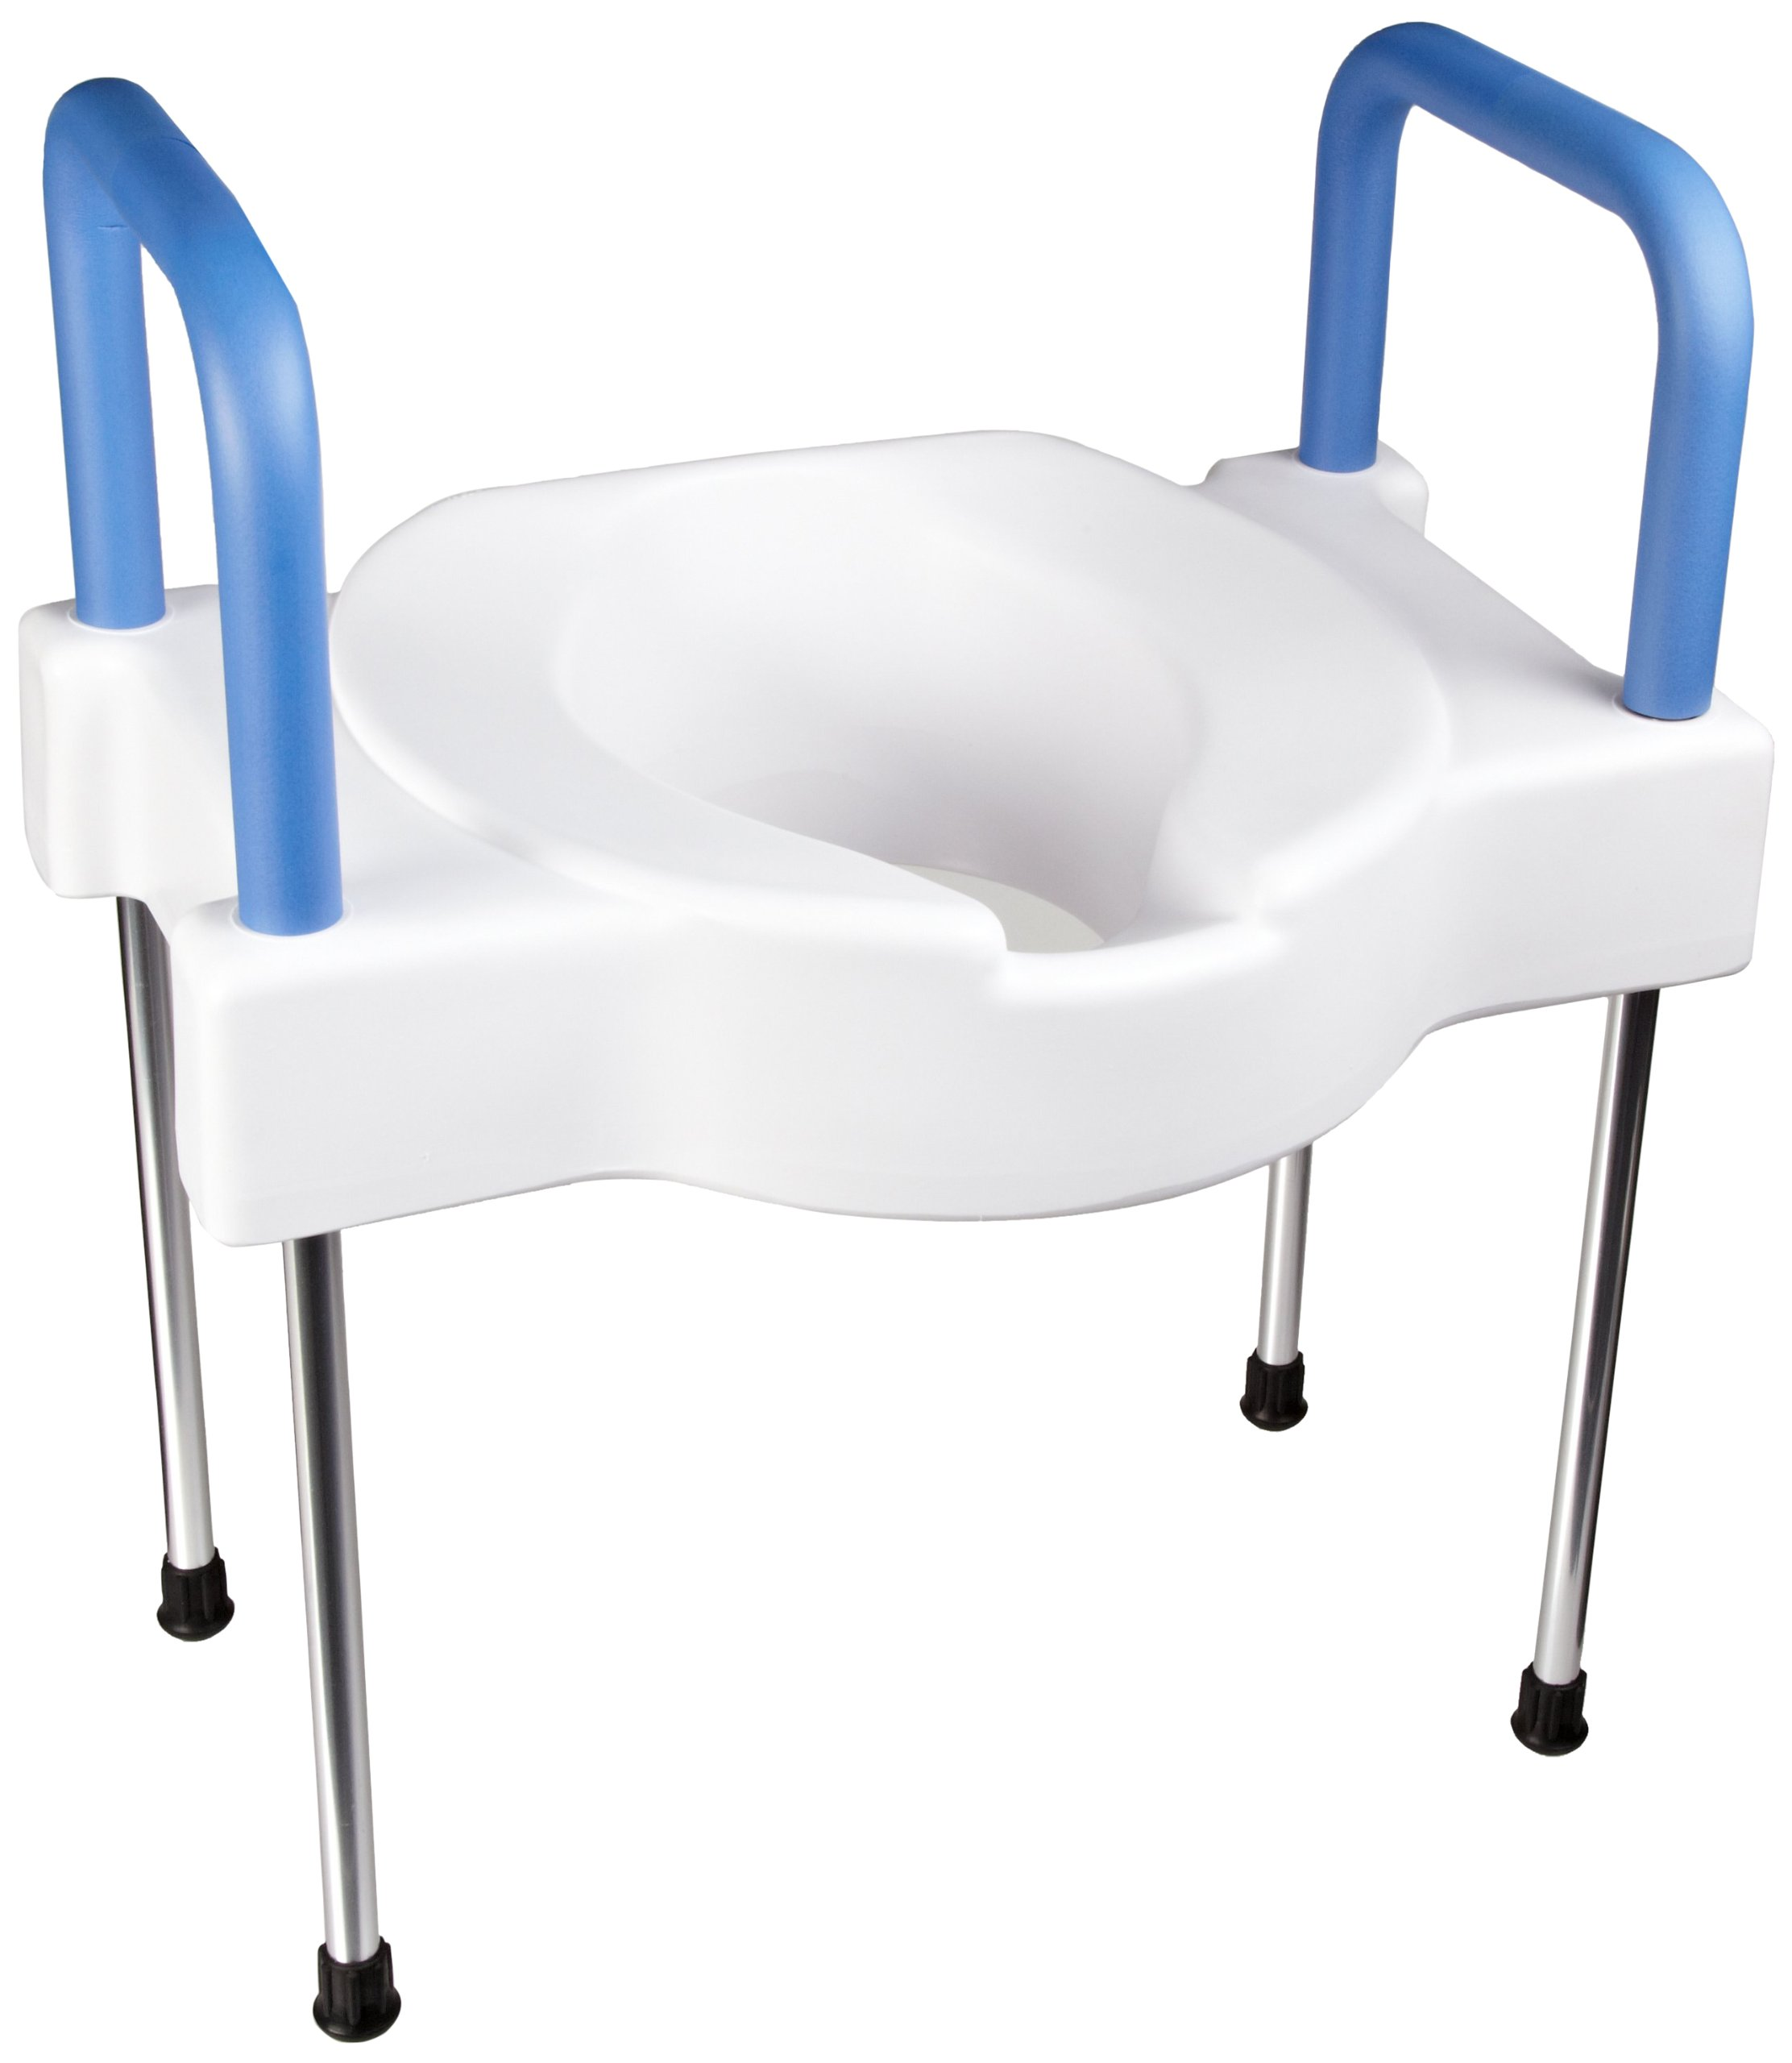 SP Ableware Tall-Ette Elevated Toilet Seat with Extra Wide Seating Surface and Legs (725881000)